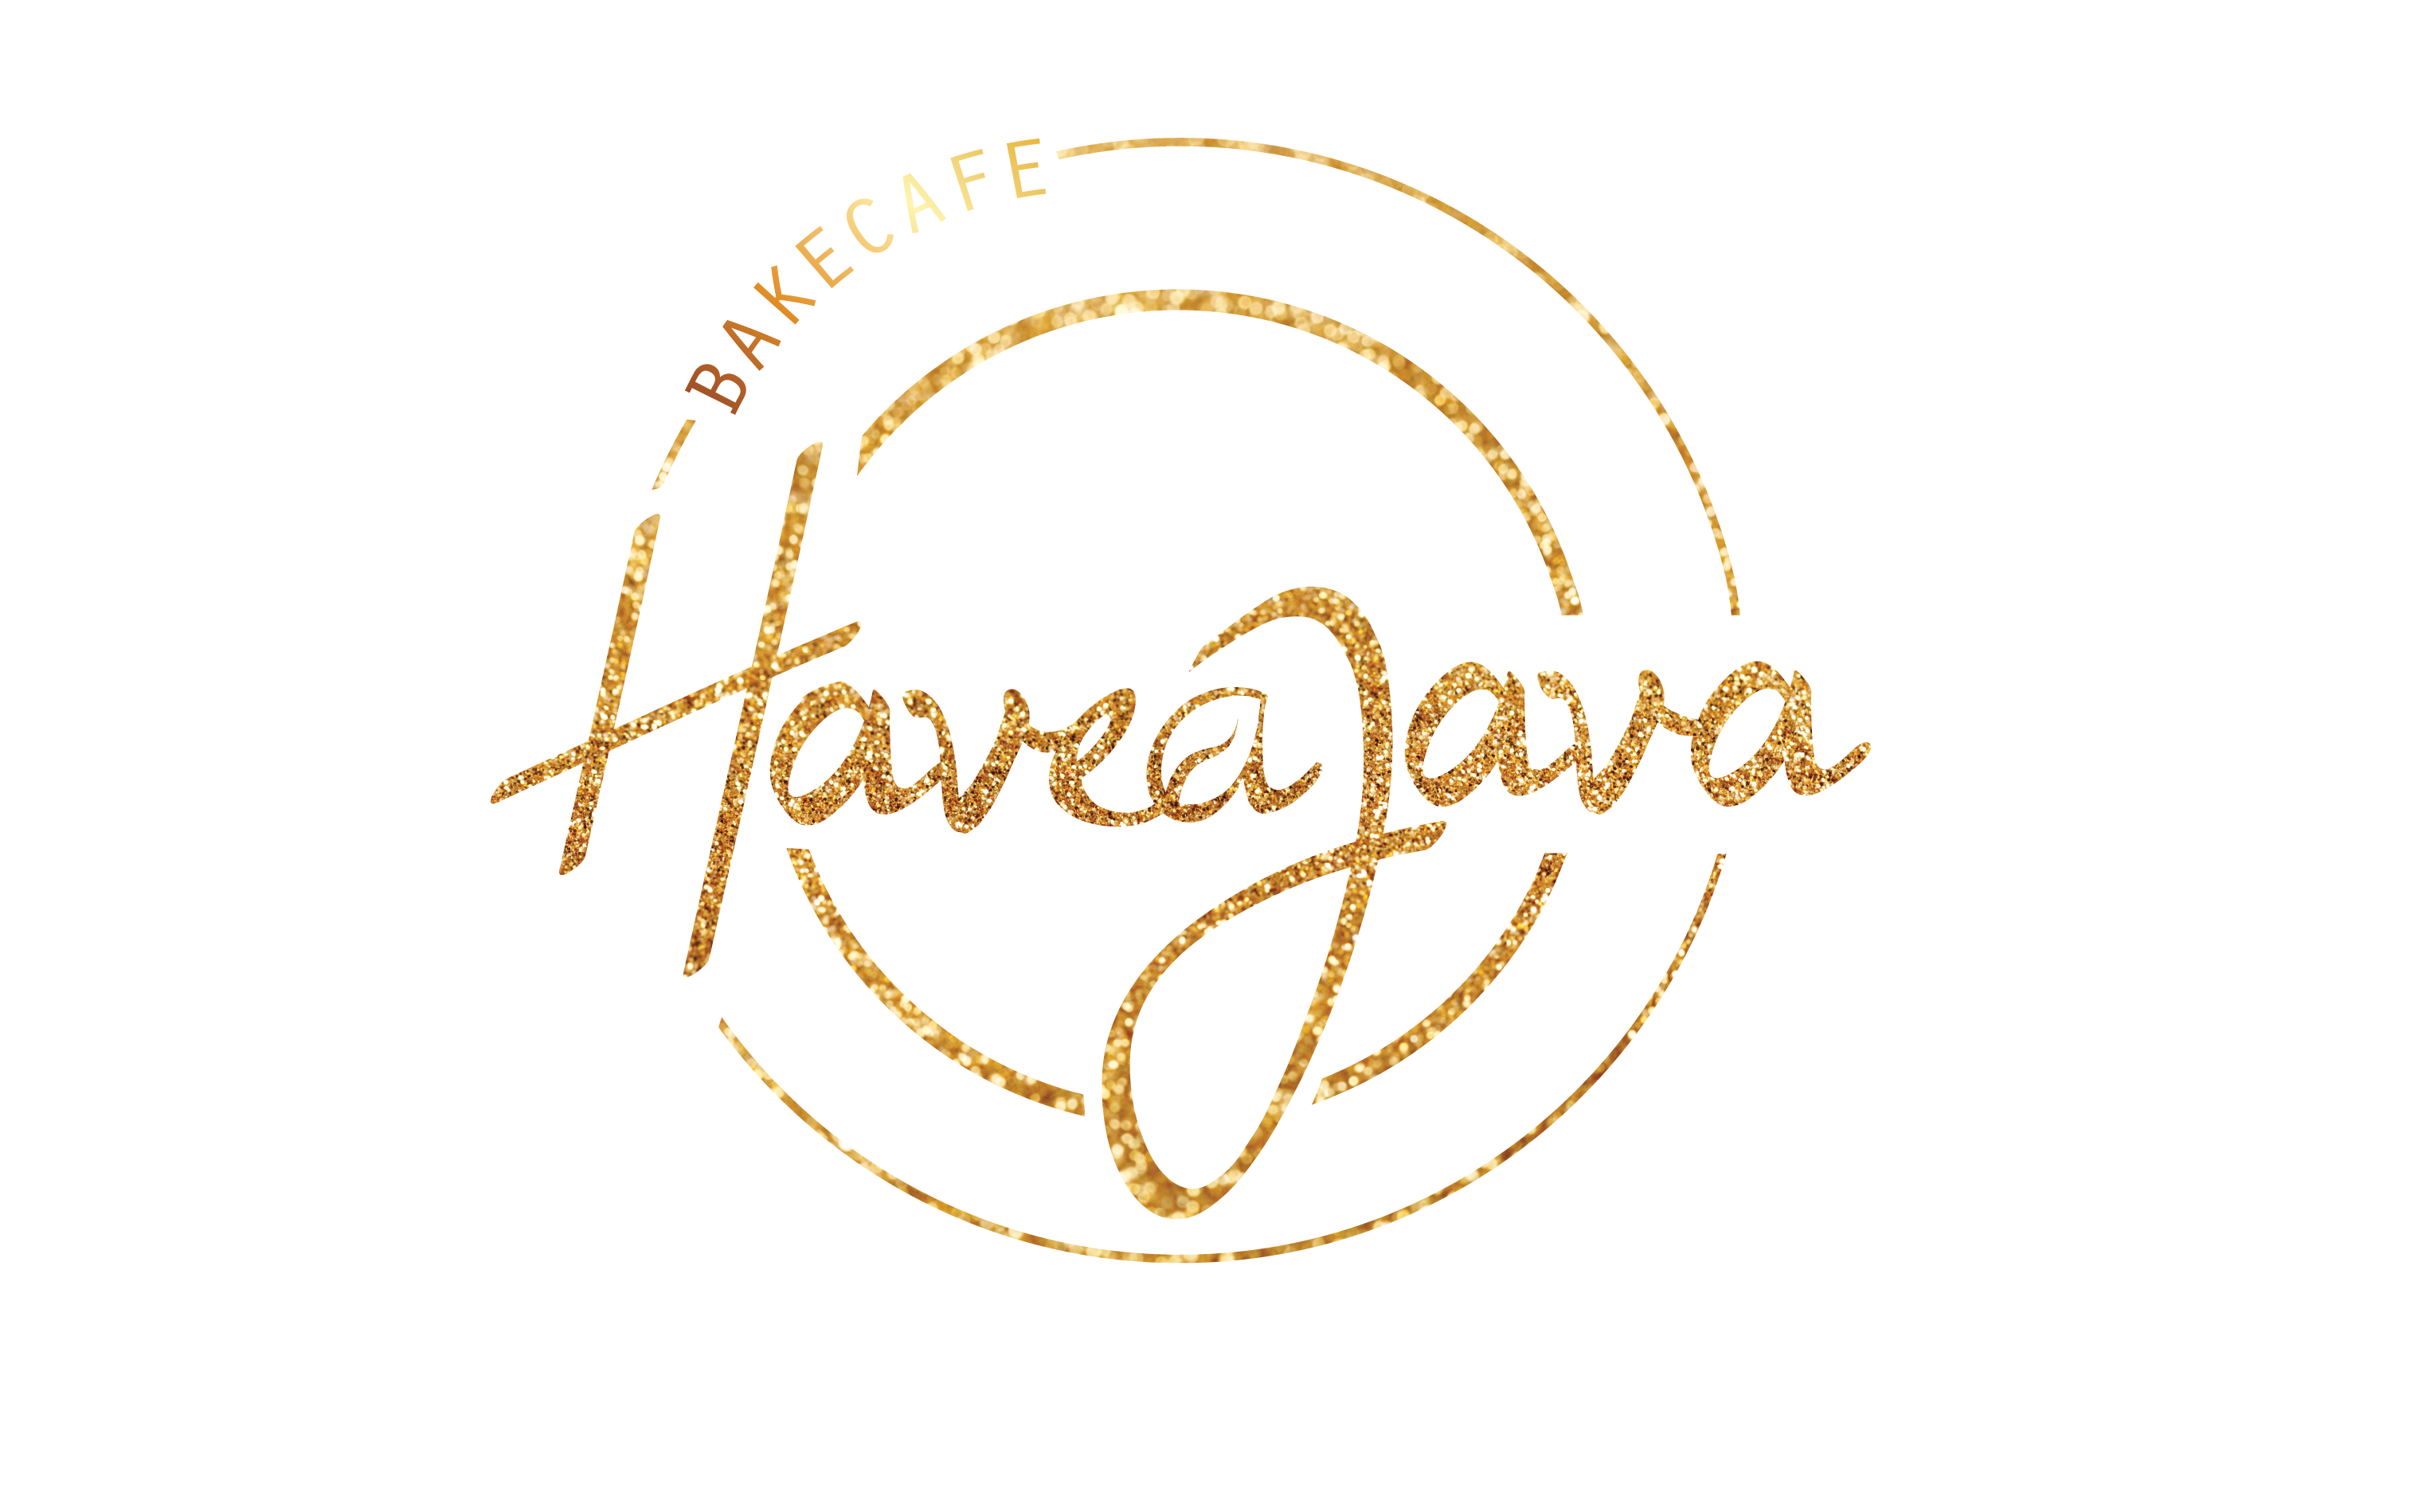 Logo and packaging design for cafe